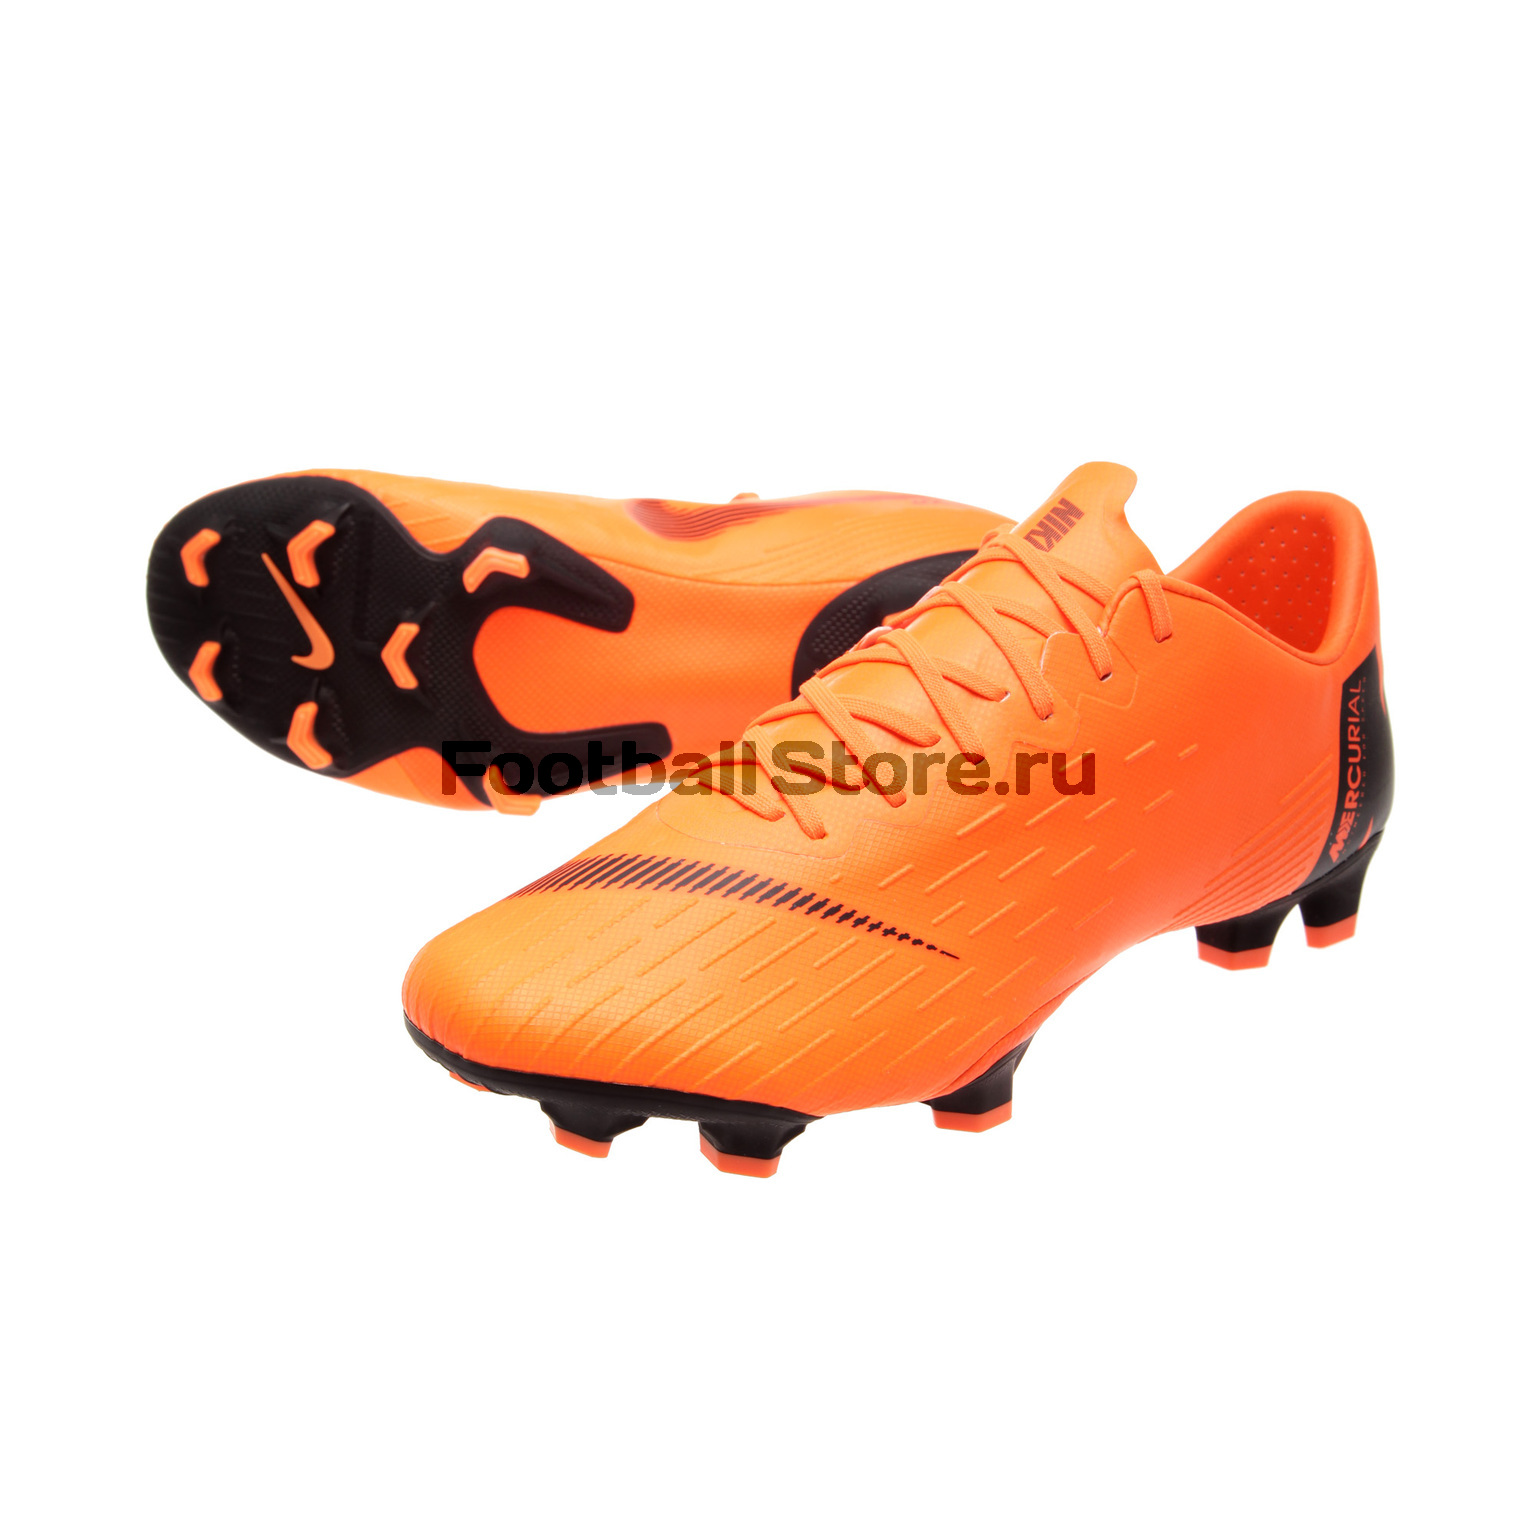 Игровые бутсы Nike Бутсы Nike Vapor 12 FG Pro FG AH7382-810 спортинвентарь nike чехол для iphone 6 на руку nike vapor flash arm band 2 0 n rn 50 078 os